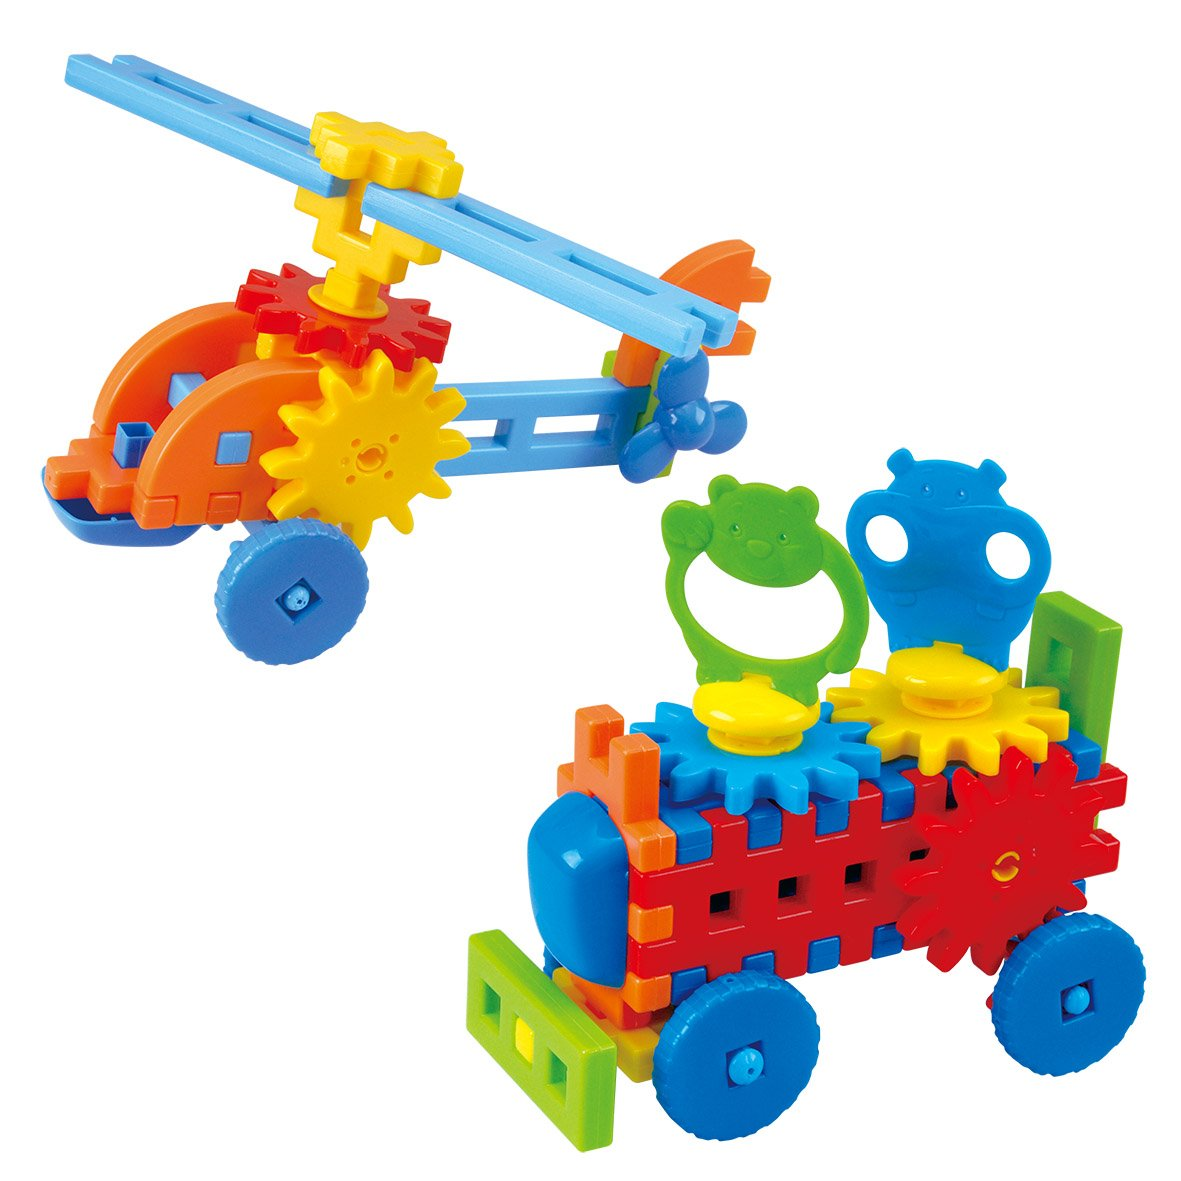 PlayGo Little Engineer Toy-Vehicles by PlayGo (Image #1)